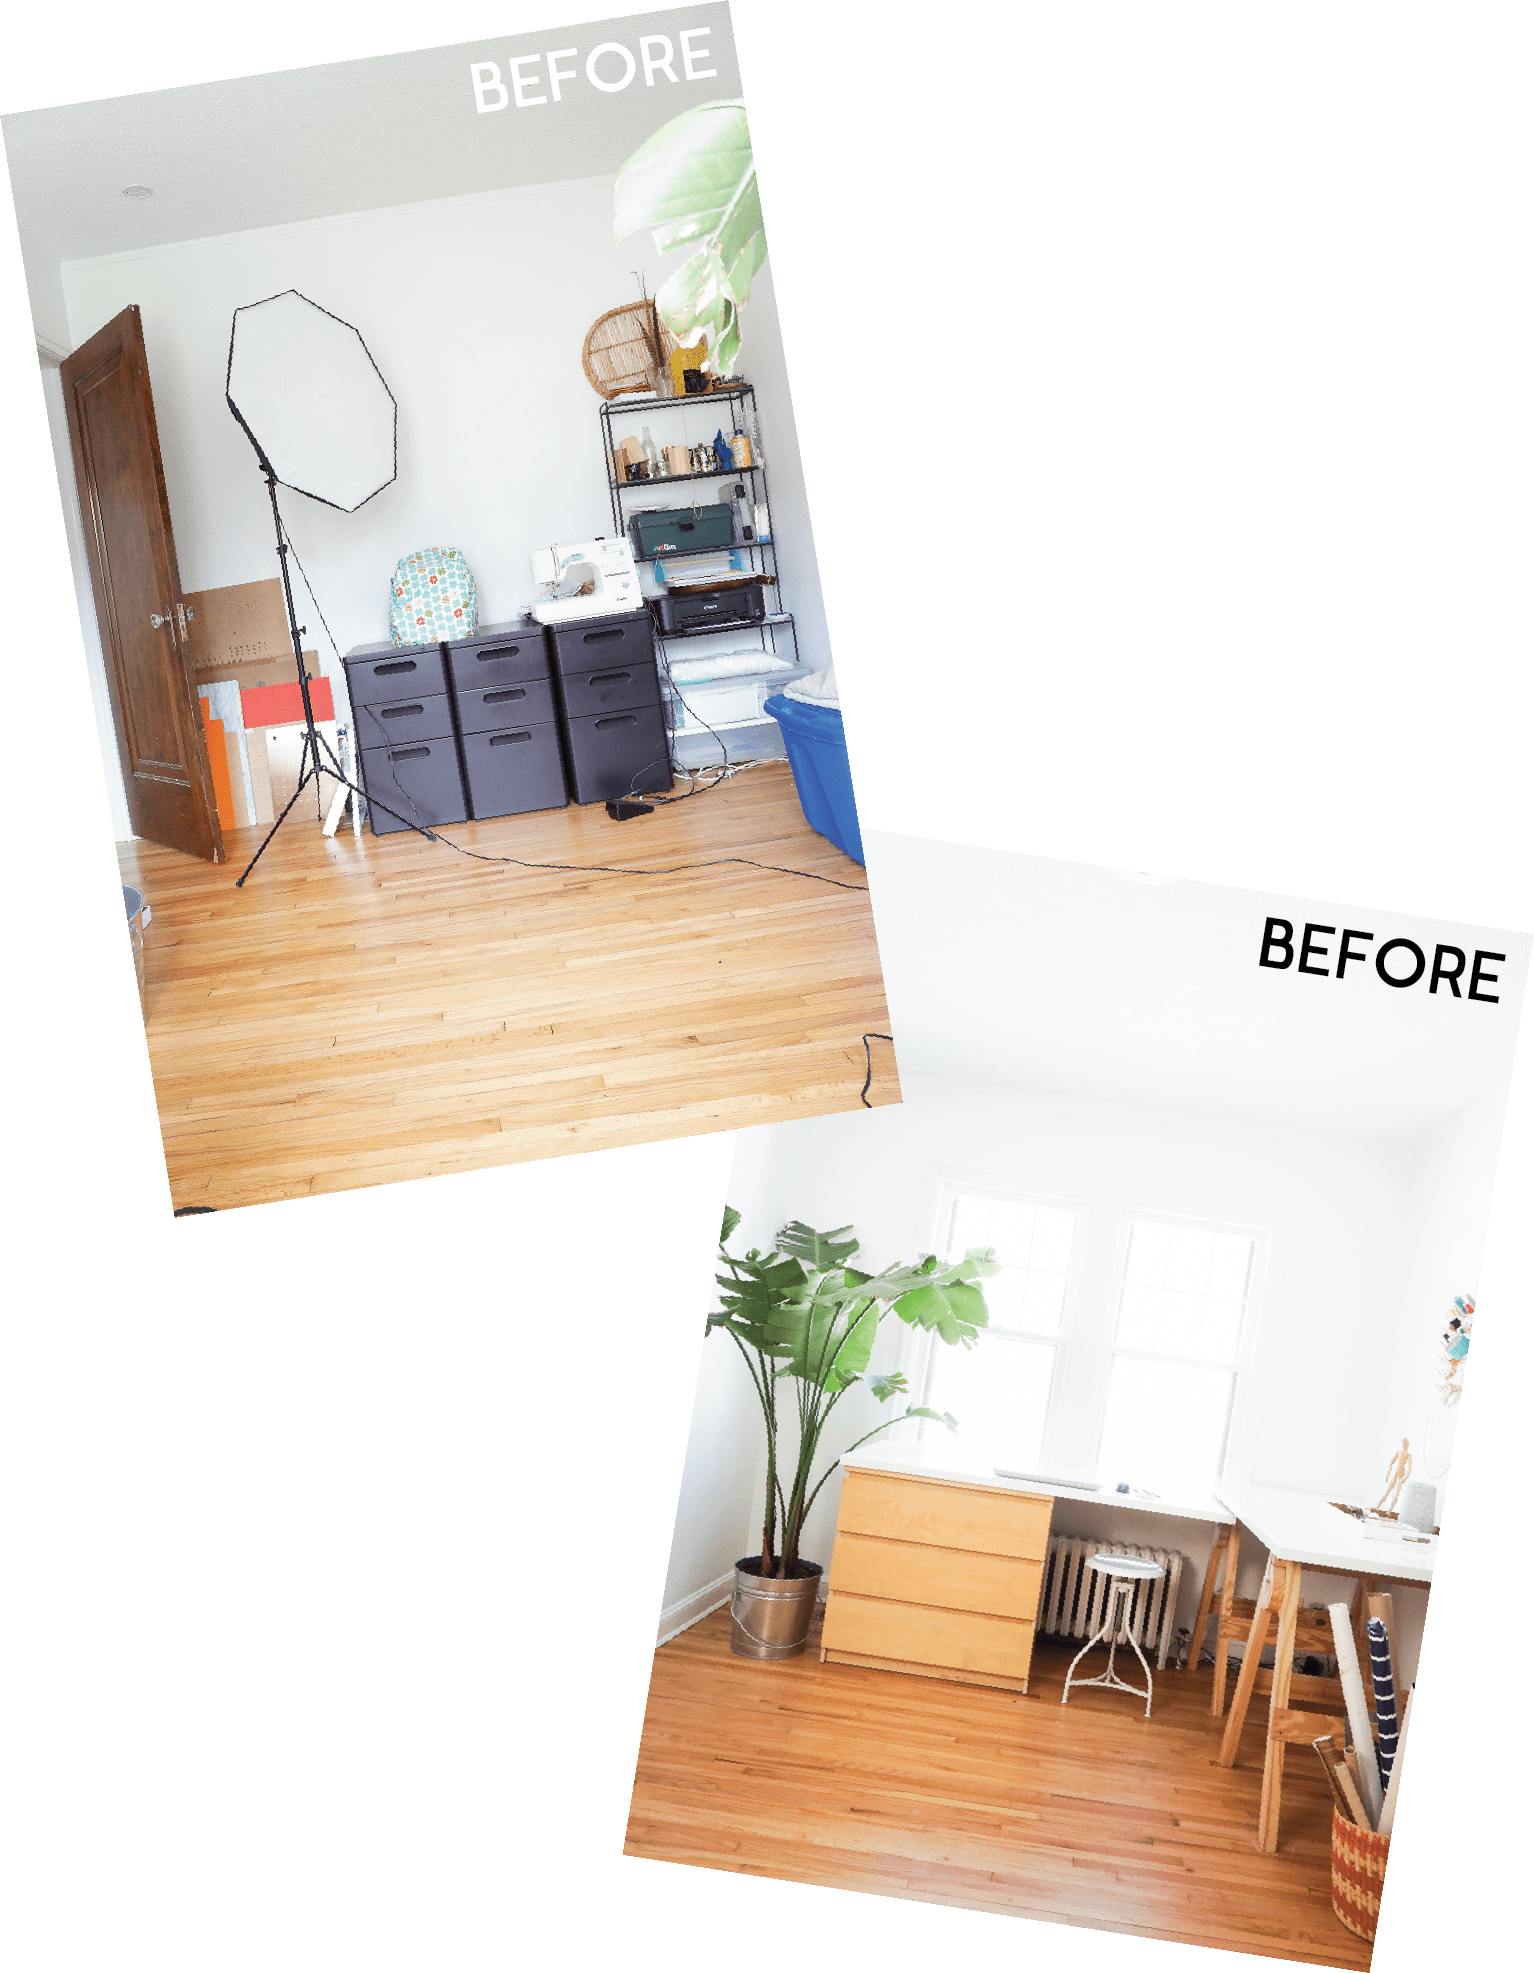 Before & After Creating a SmallSpace Guestroom with